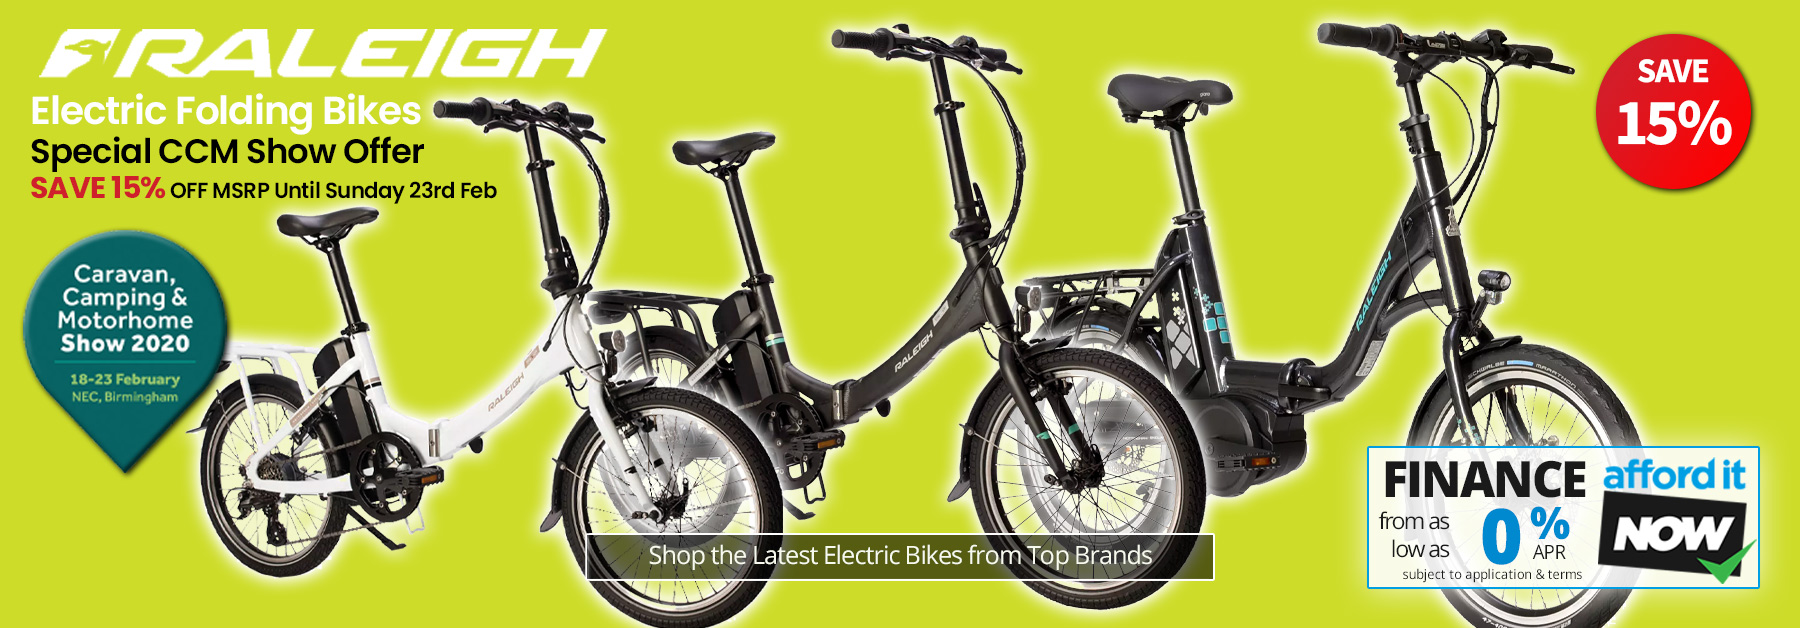 Save on Raleigh Electric Folding Bikes